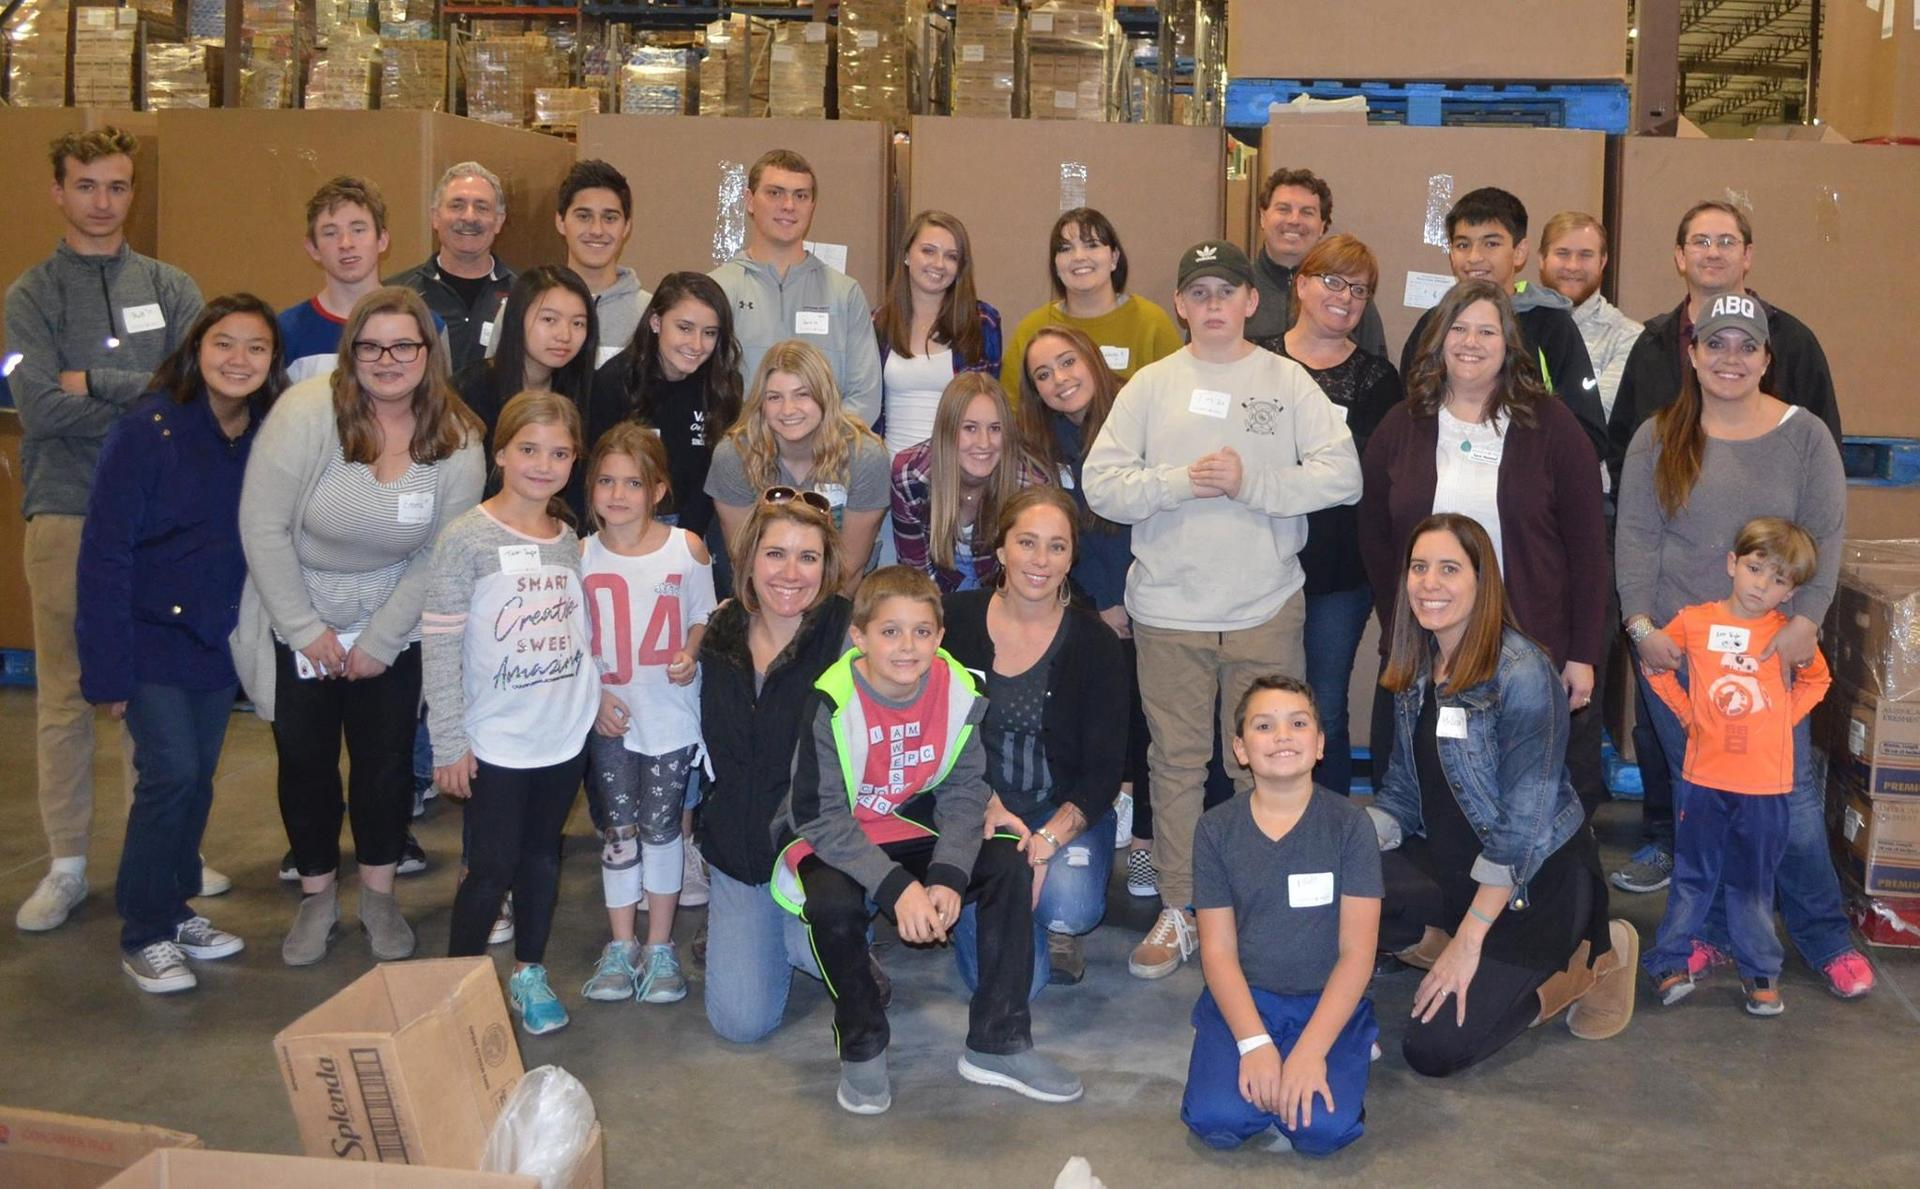 Each year committee members host an 'afternoon of service' at Roadrunner Food Bank. The volunteer initiative is well attended by both Prep students and alumni families.